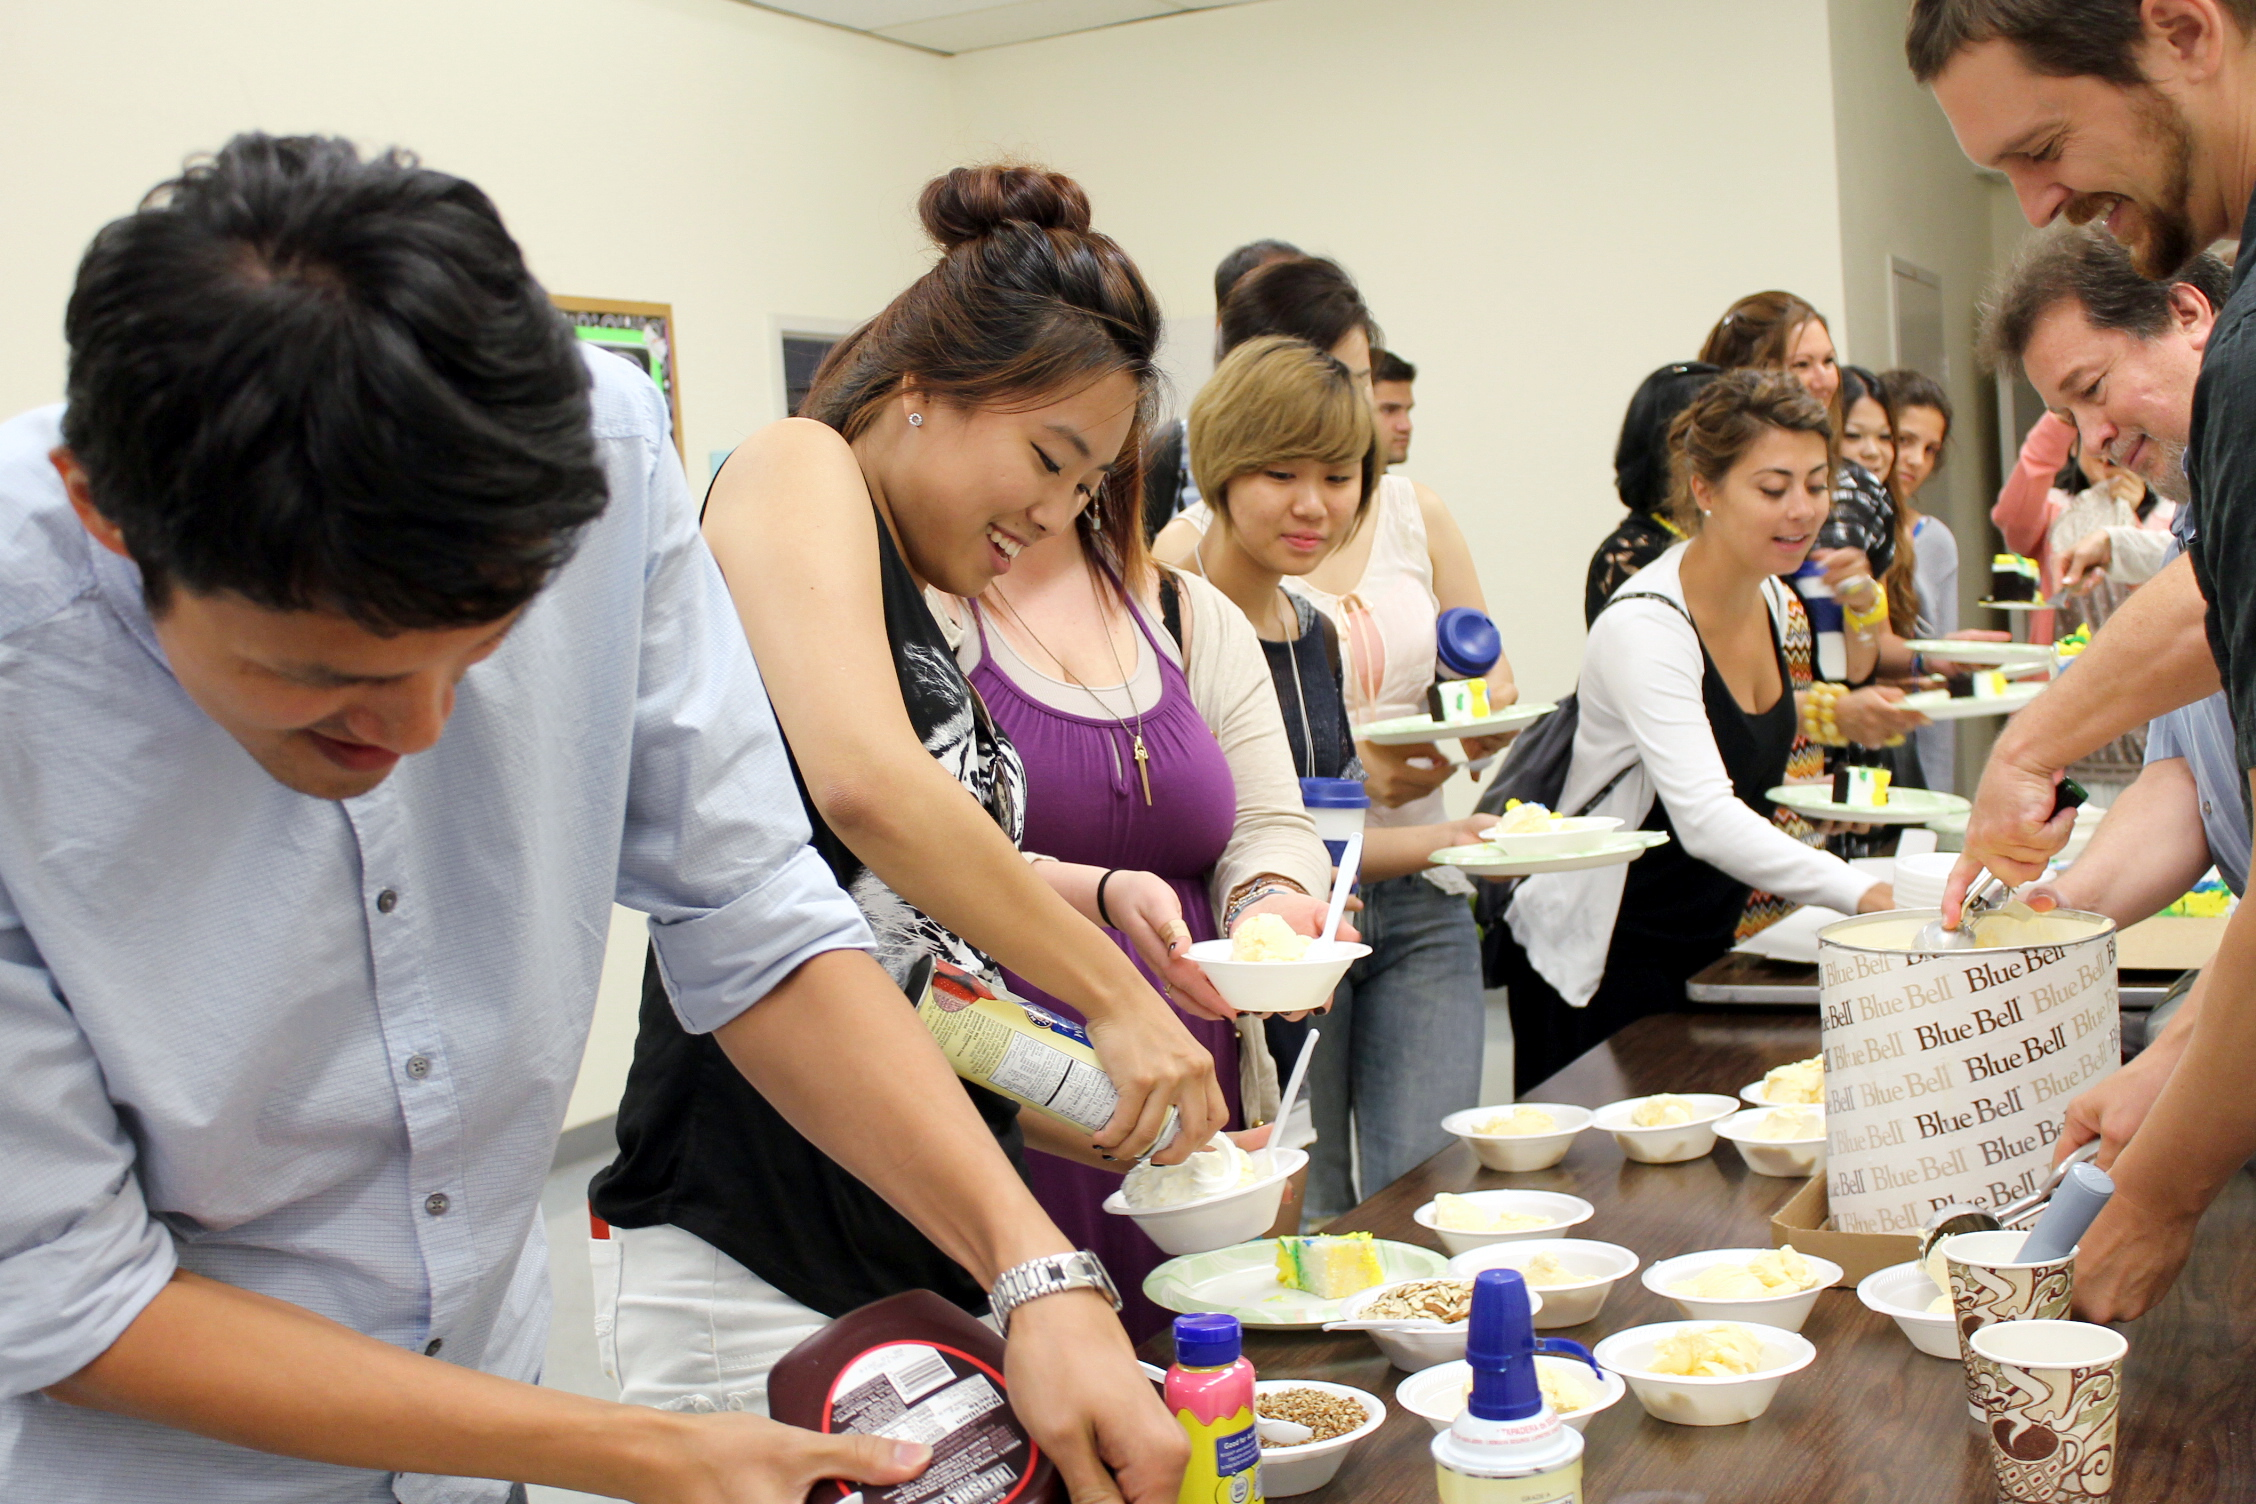 Photo of International students eating ice cream at TIEC event